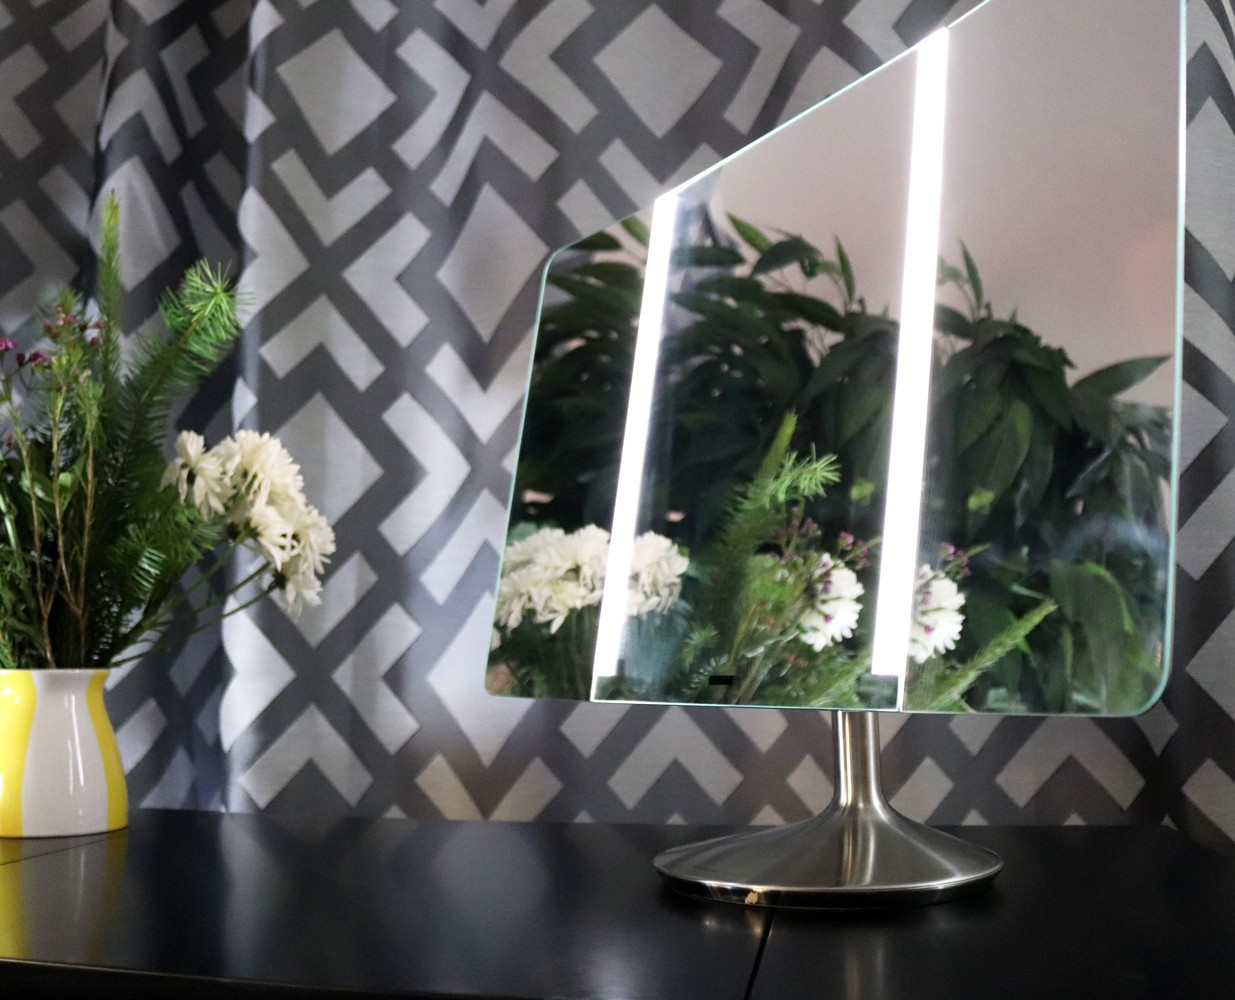 SimpleHuman Sensor Mirror Wide View Pro Review - SimpleHuman Mirrors Changed My Makeup Game by LA cruelty free beauty blogger My Beauty Bunny